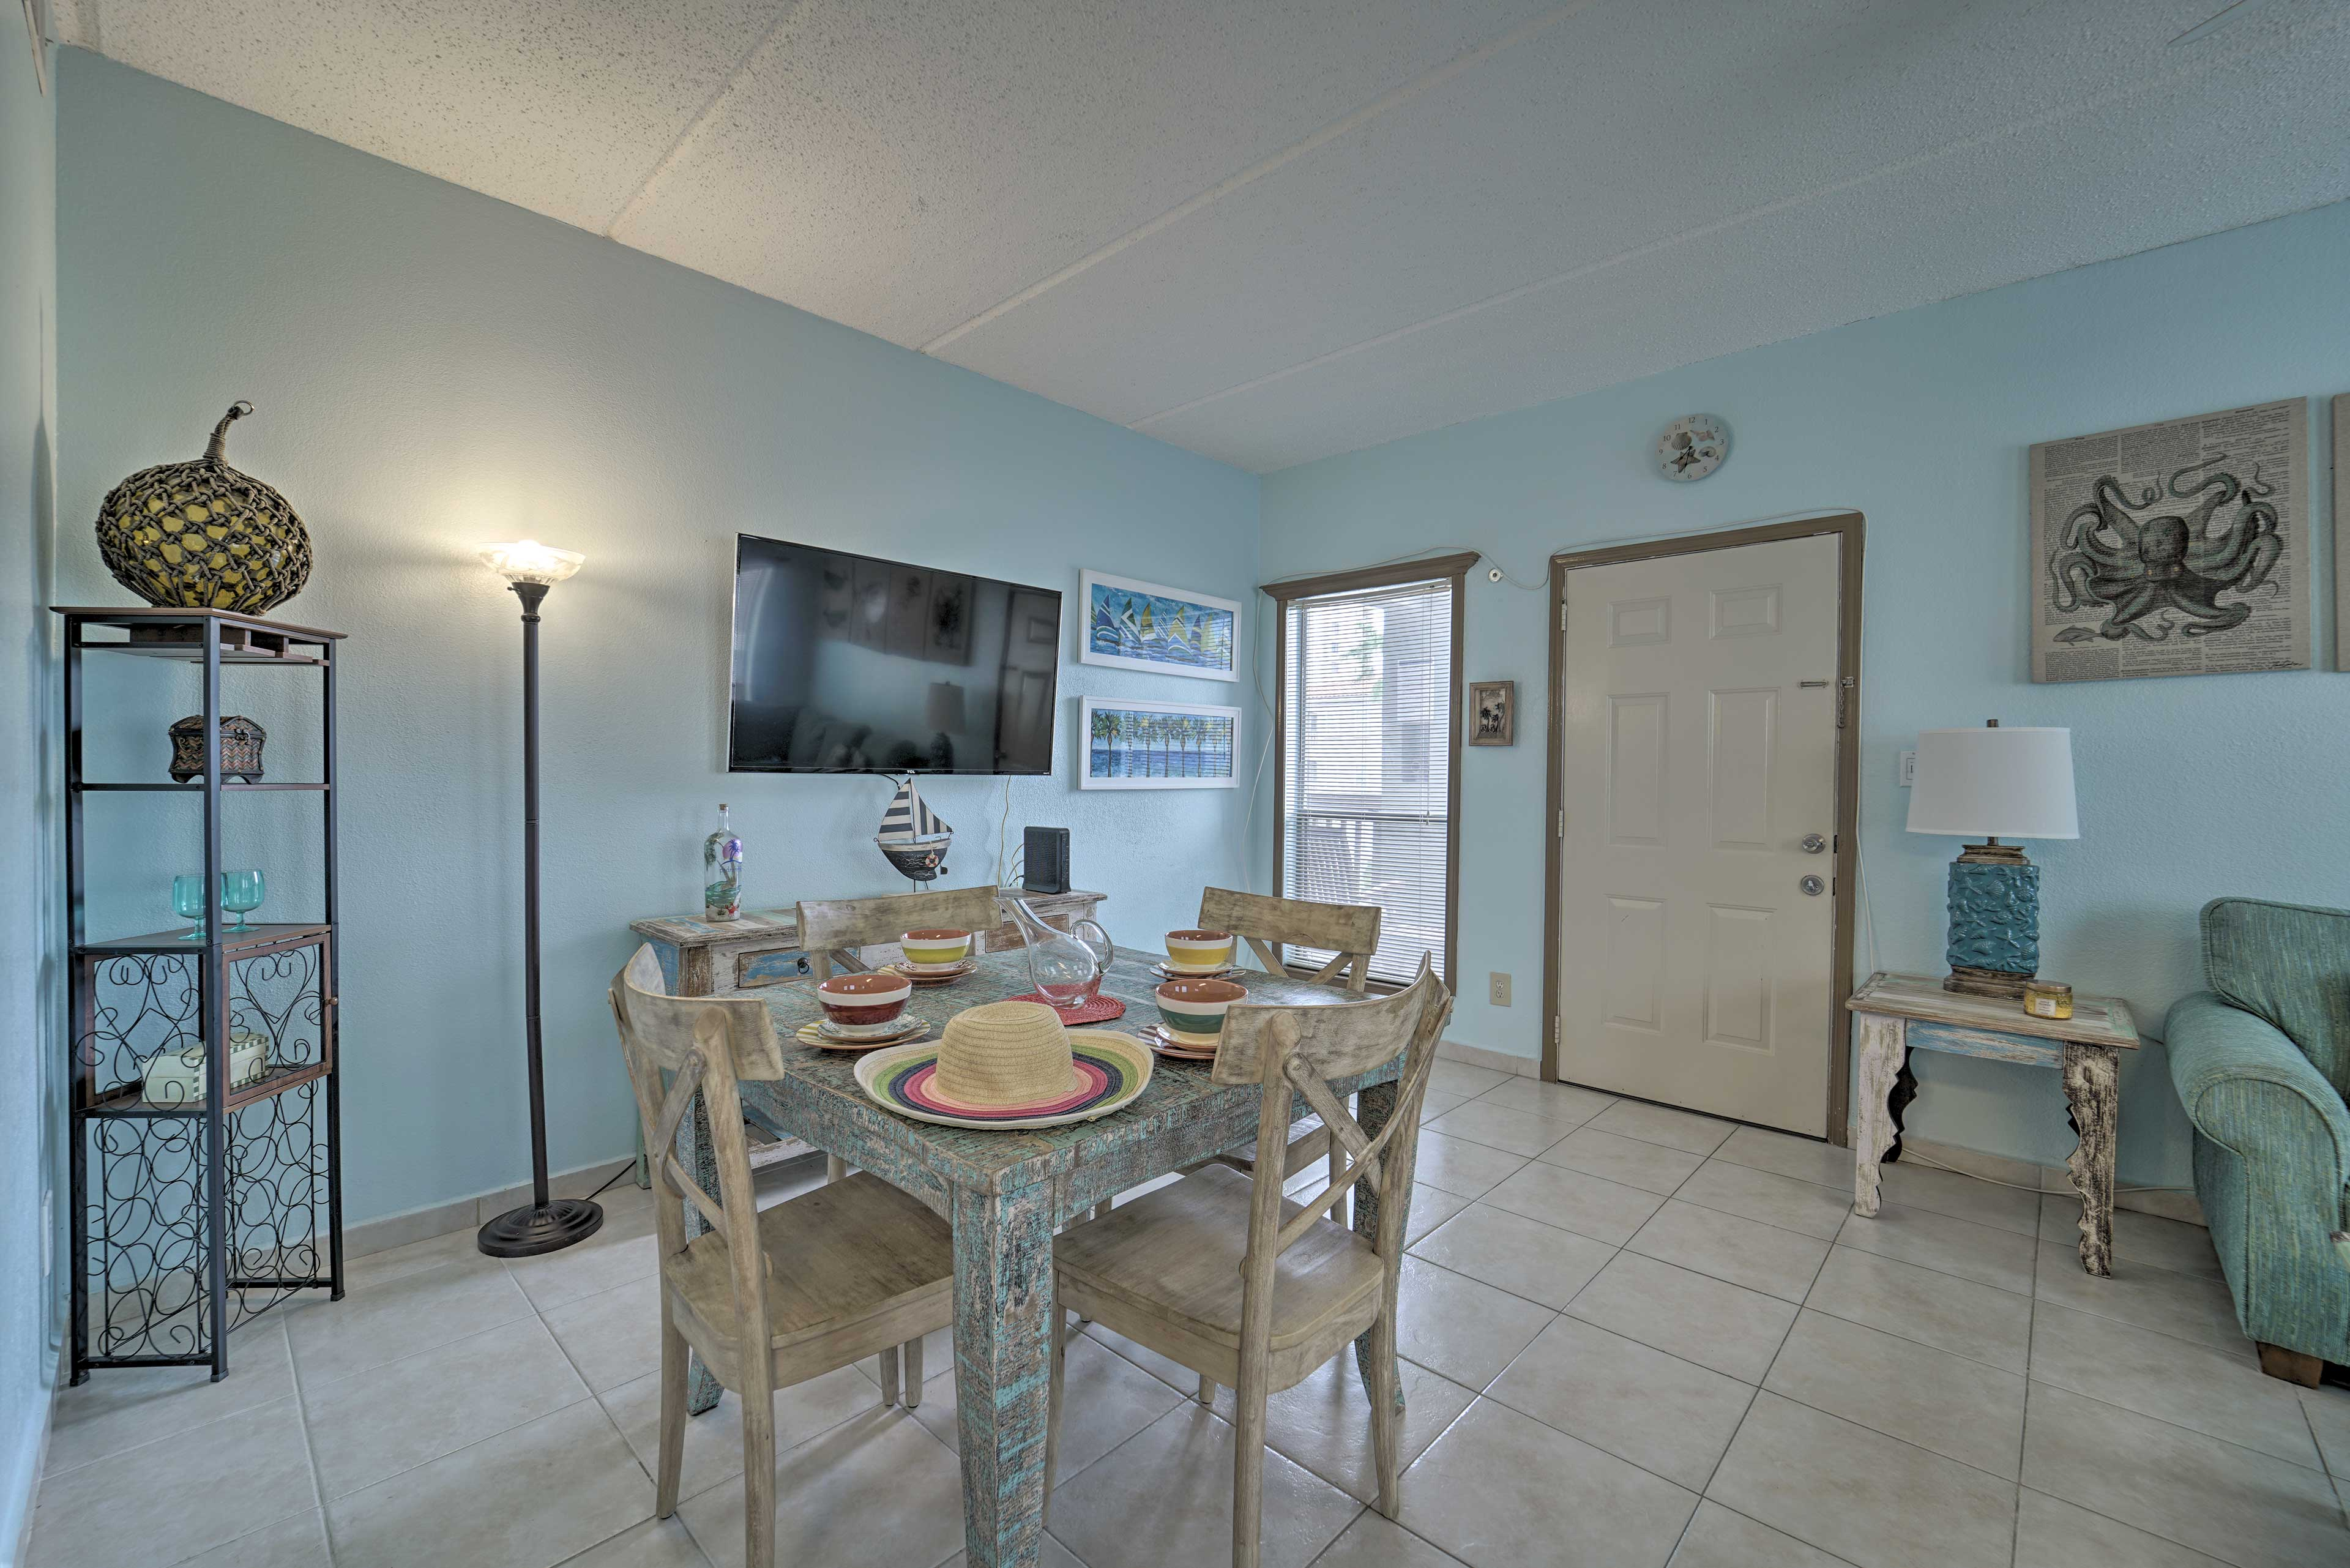 Come visit this 1-bedroom, 1-bathroom condo in South Padre Island!